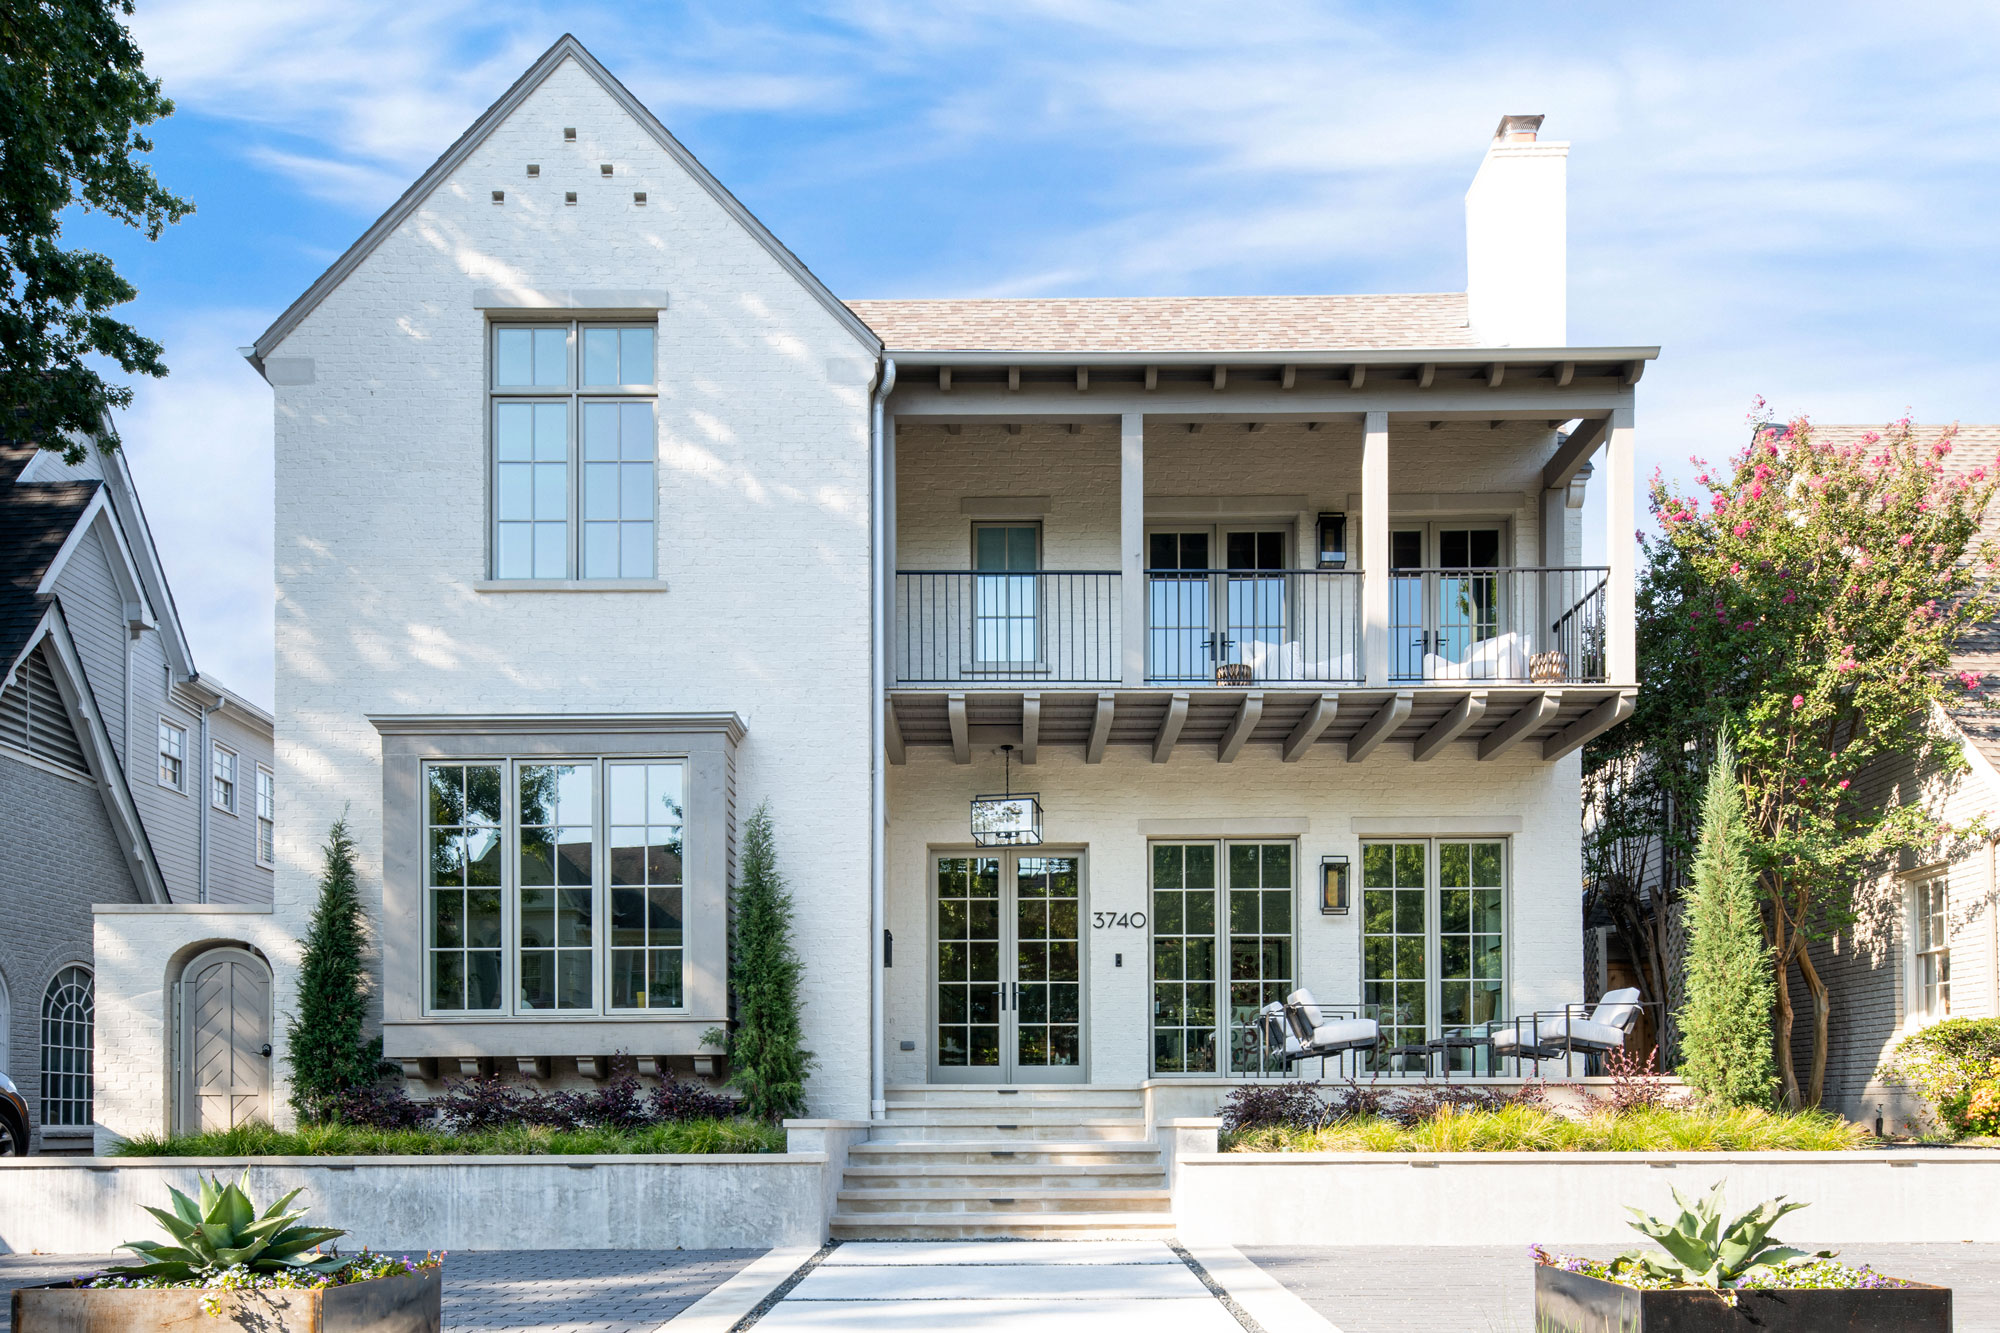 Two-story home with a balcony and front porch. Front door painted a custom color.